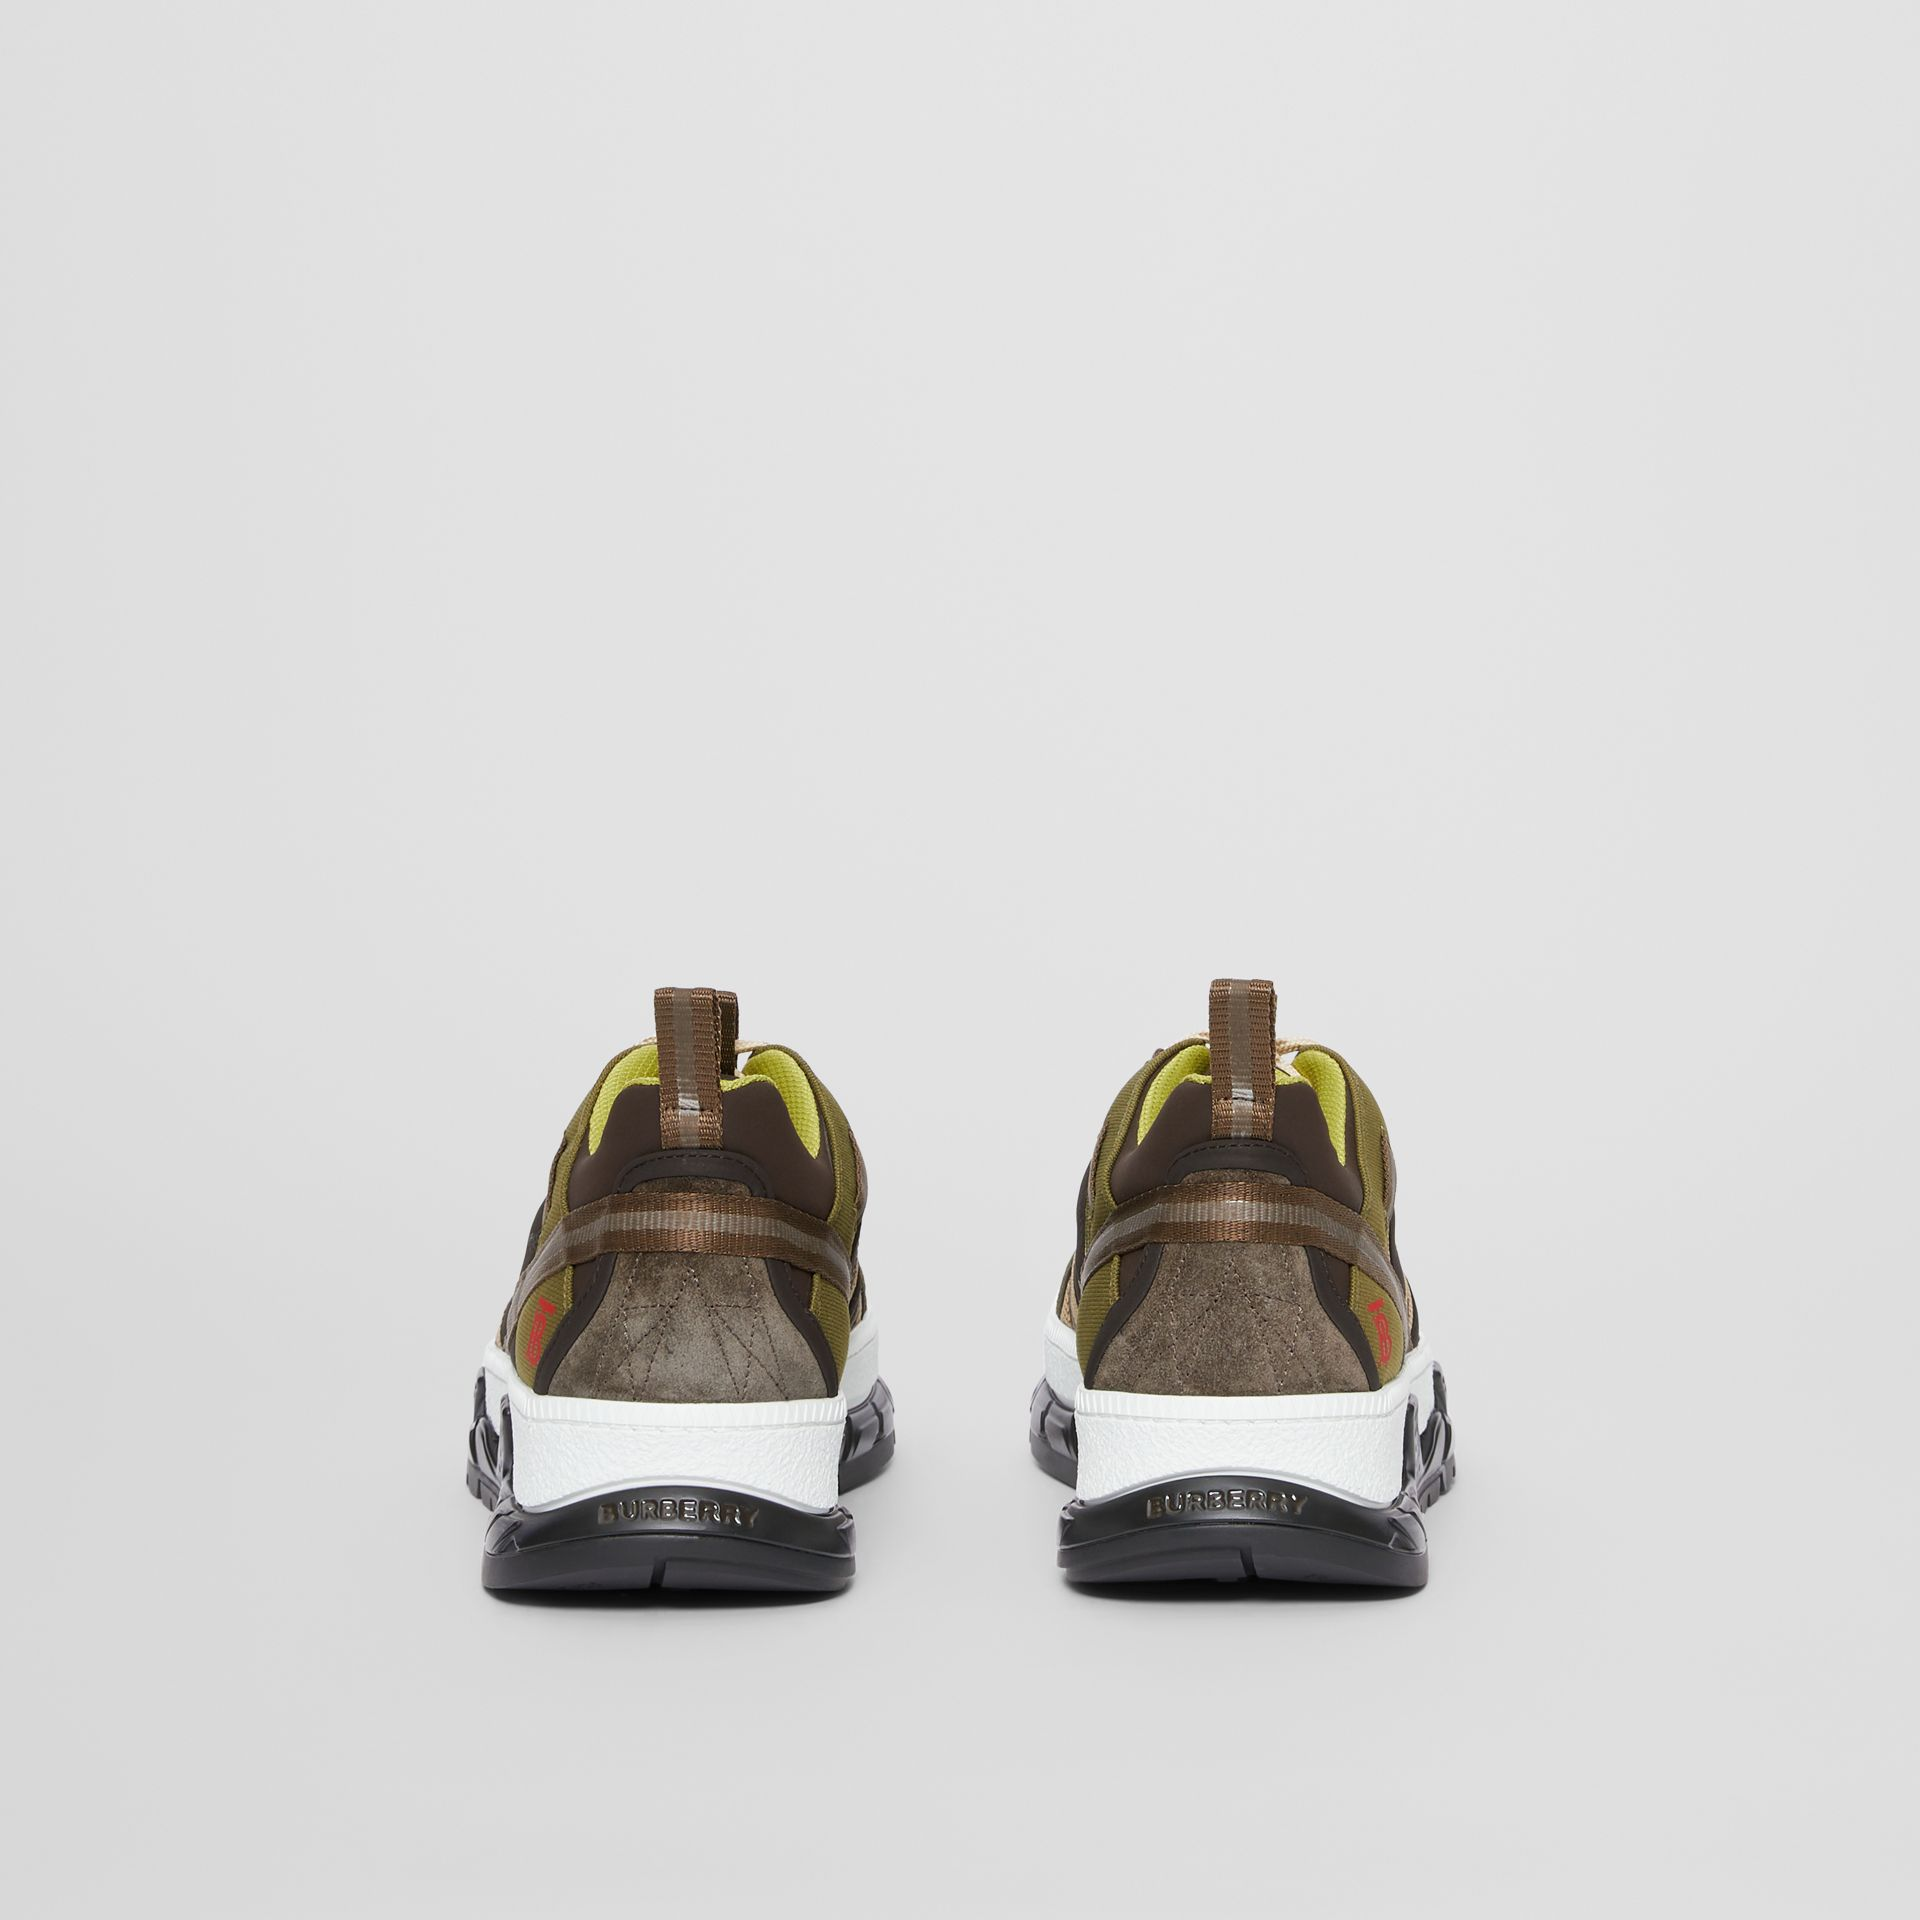 Mesh and Suede Union Sneakers in Khaki / Brown - Men | Burberry - gallery image 3